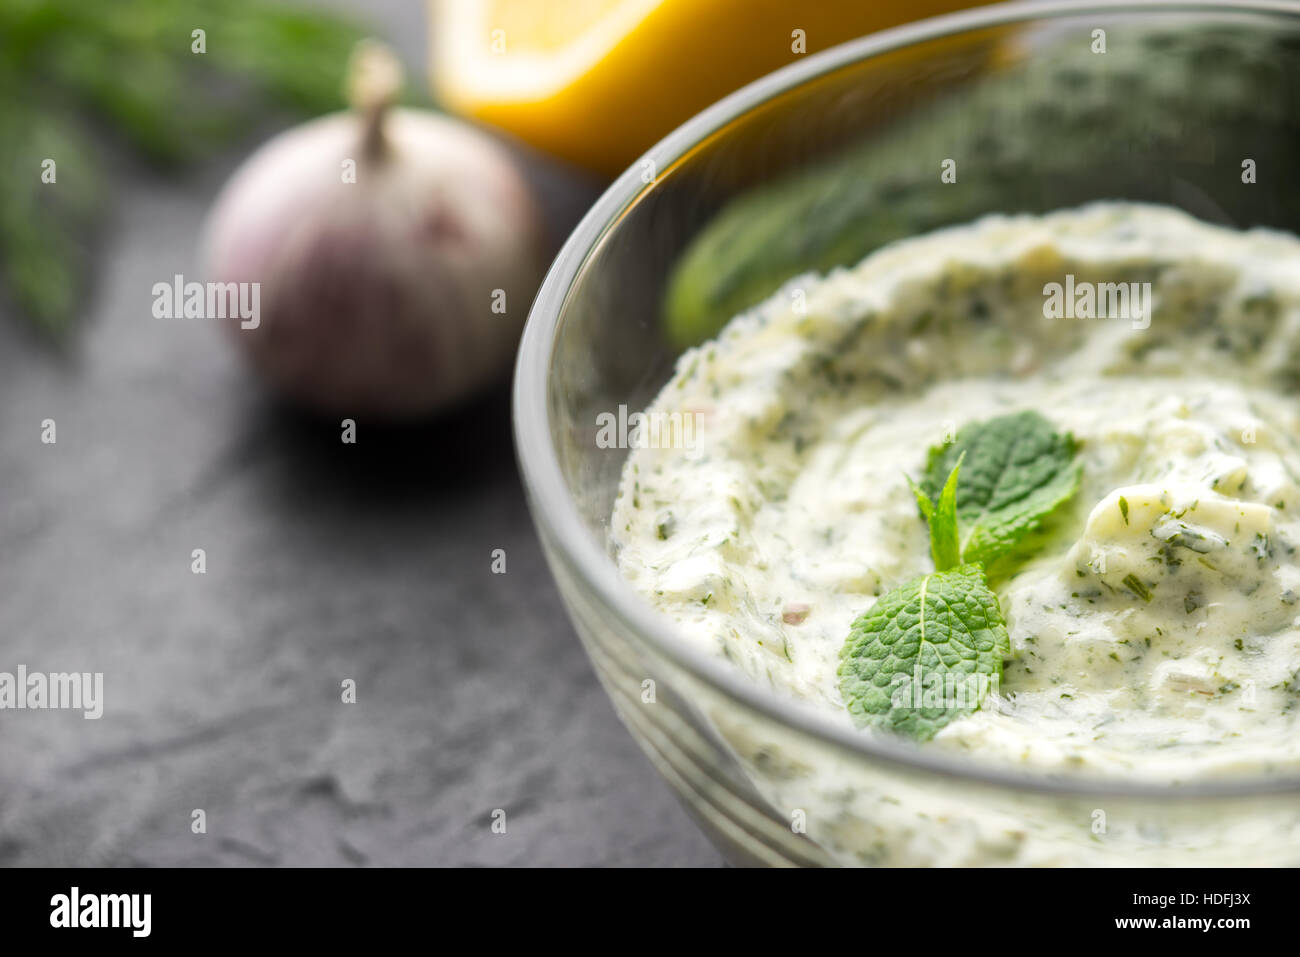 Tzatziki in the glass bowl on the black stone table horizontal - Stock Image